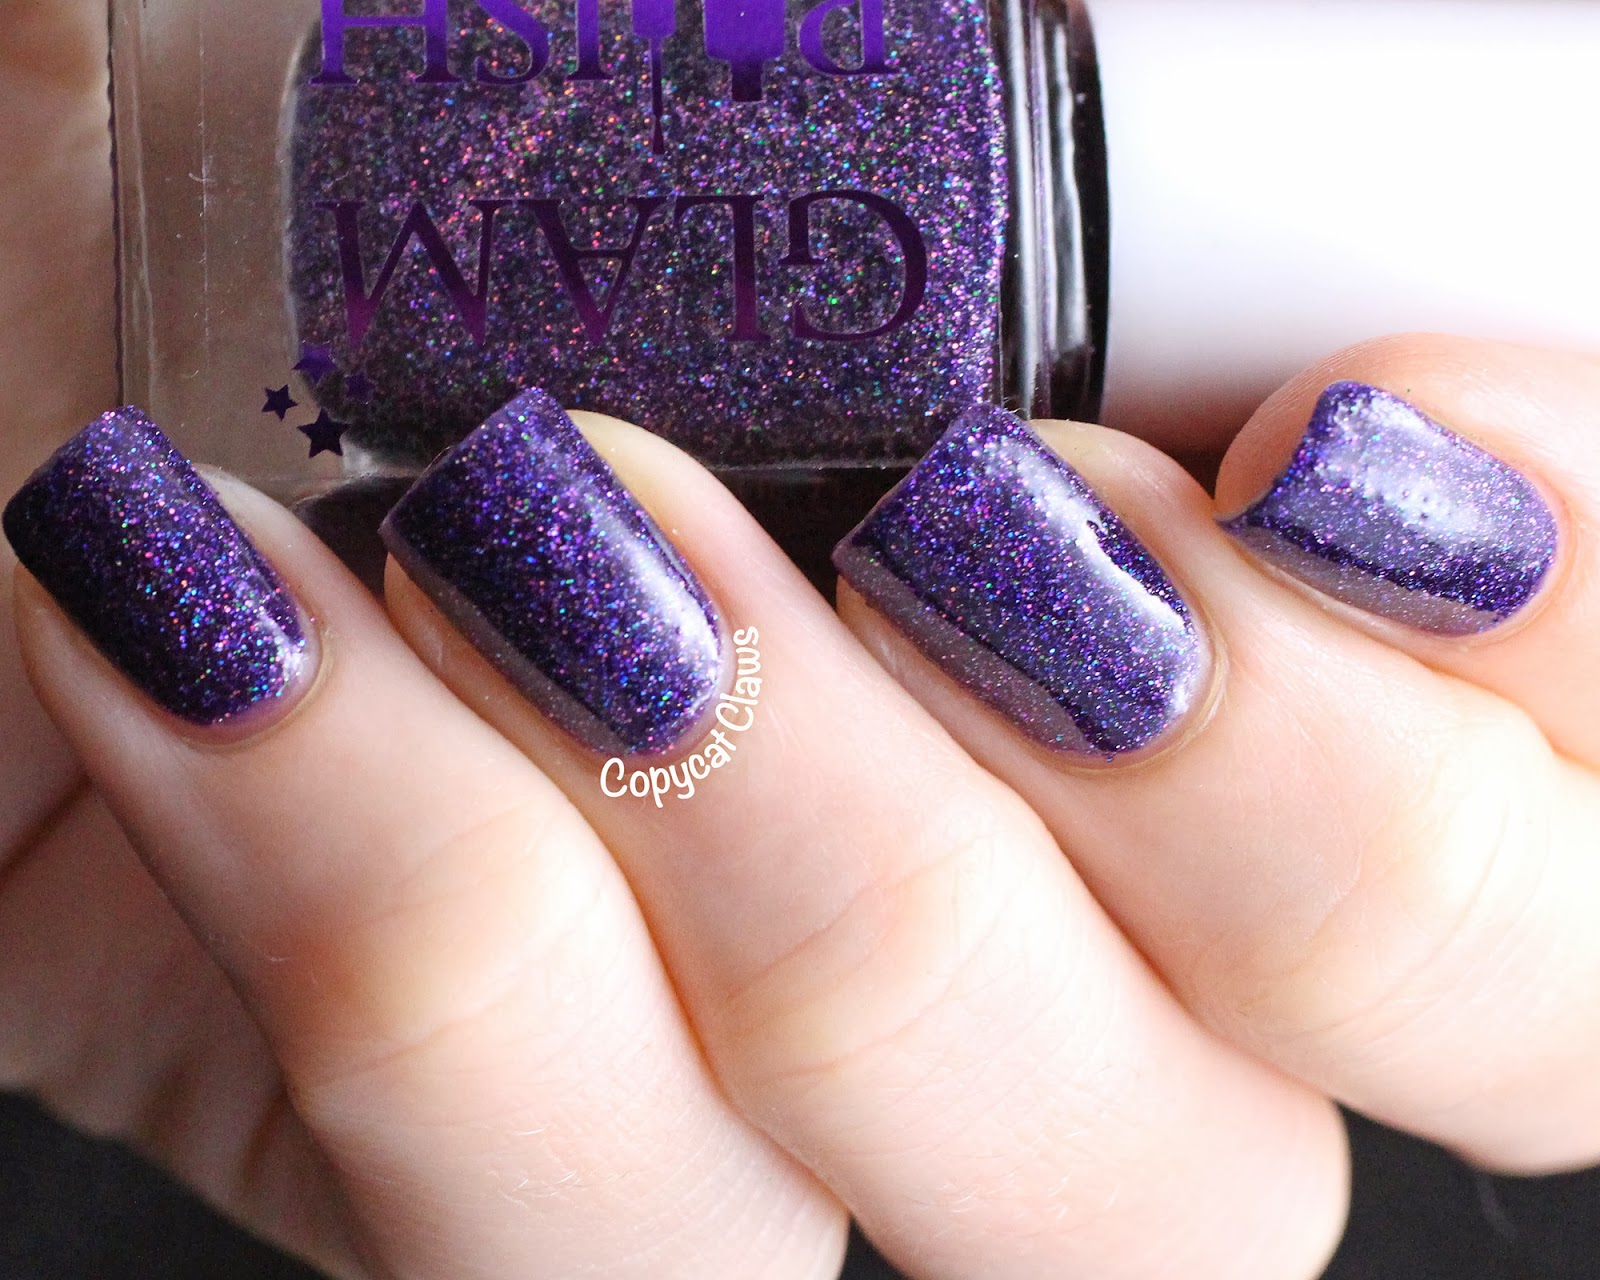 Copycat Claws: Glam Polish Swatches & Review